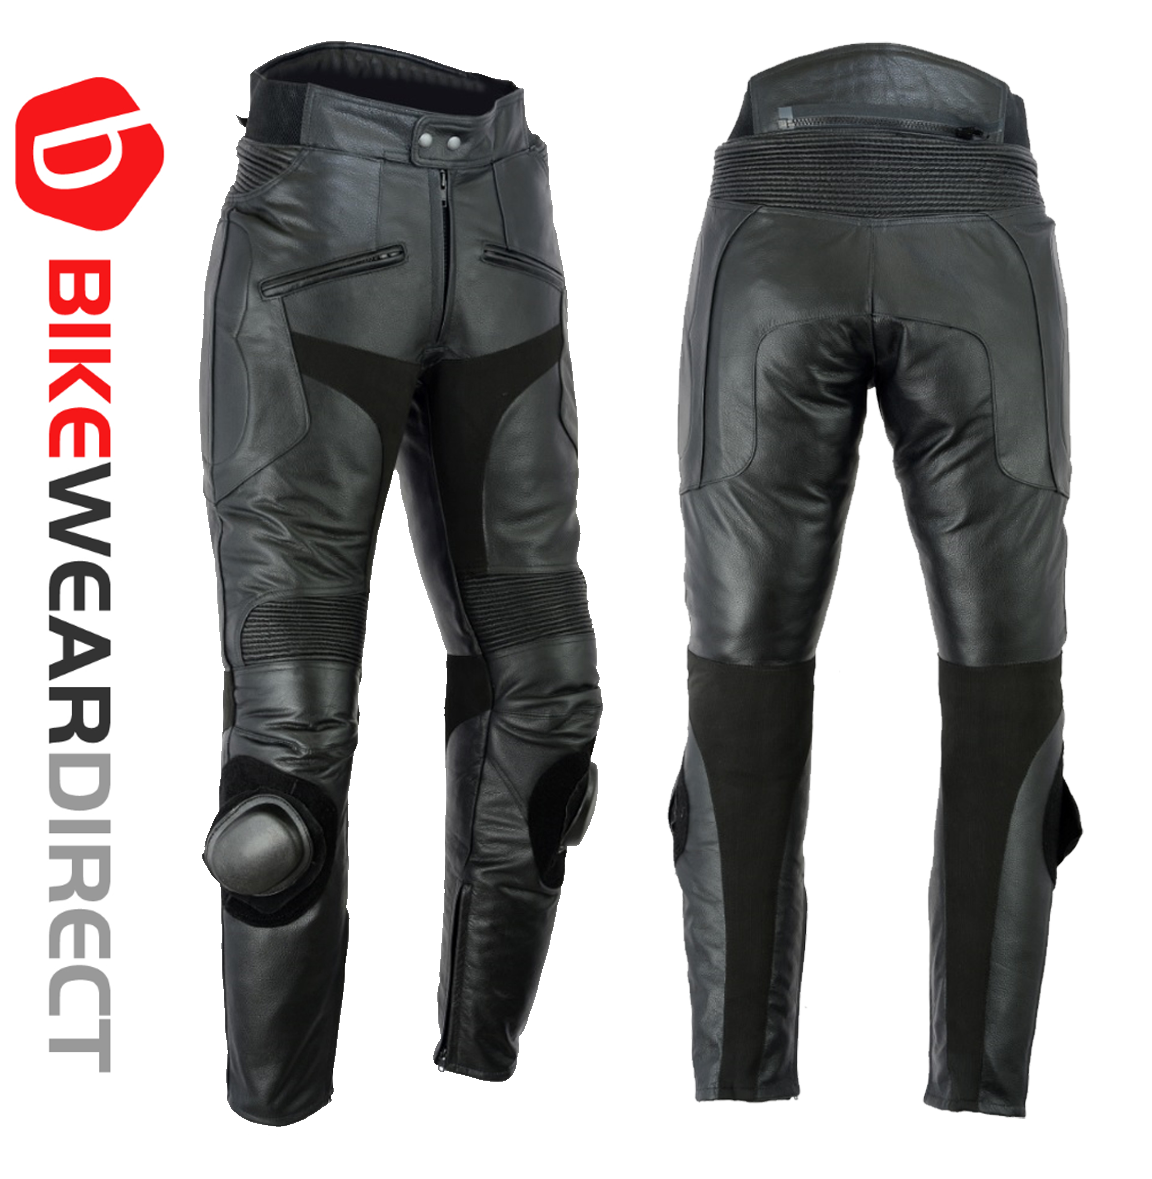 2dba62d961a570 Texpeed Black Mens Leather Trousers With Sliders   Leather Trousers ...